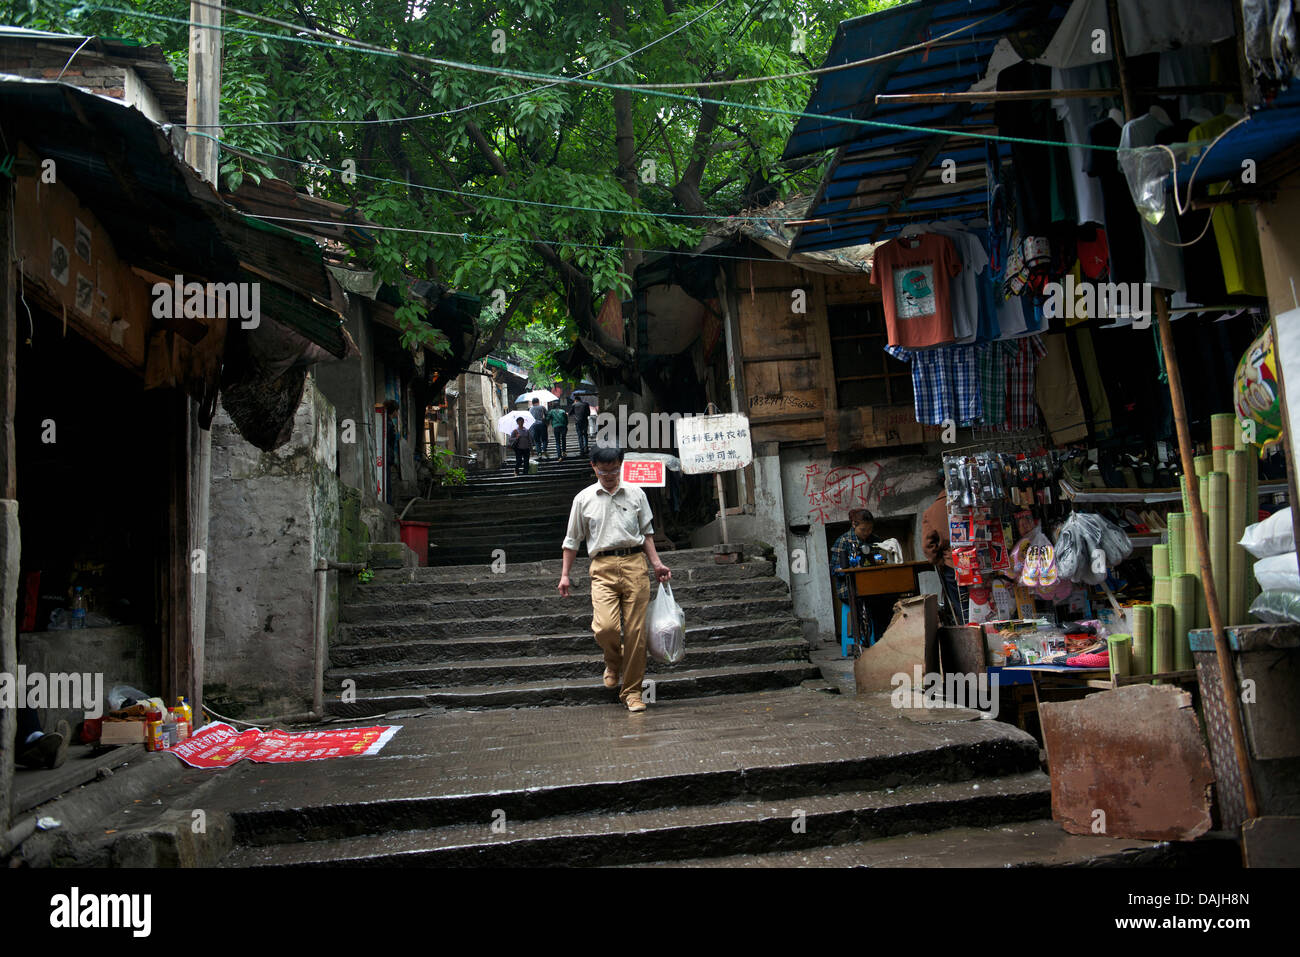 Old Shibati (The eighteen ladder) in central Chongqing, China. 09-May-2013 Stock Photo